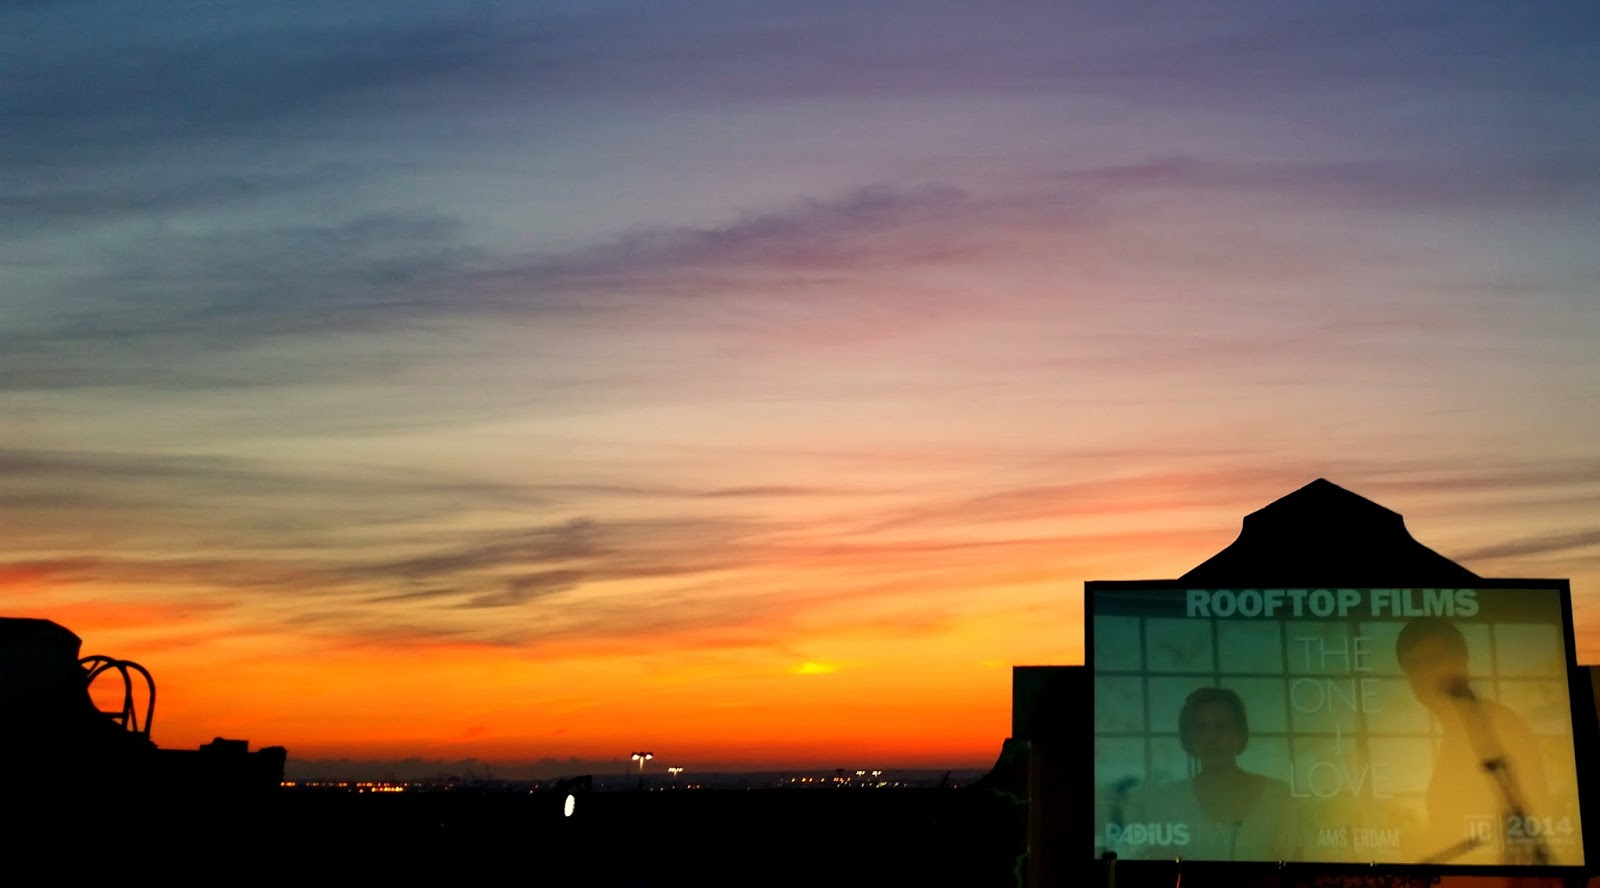 sunset rooftopfilms rooftop film brooklyn the one i love nyc solnedgang new york sommer